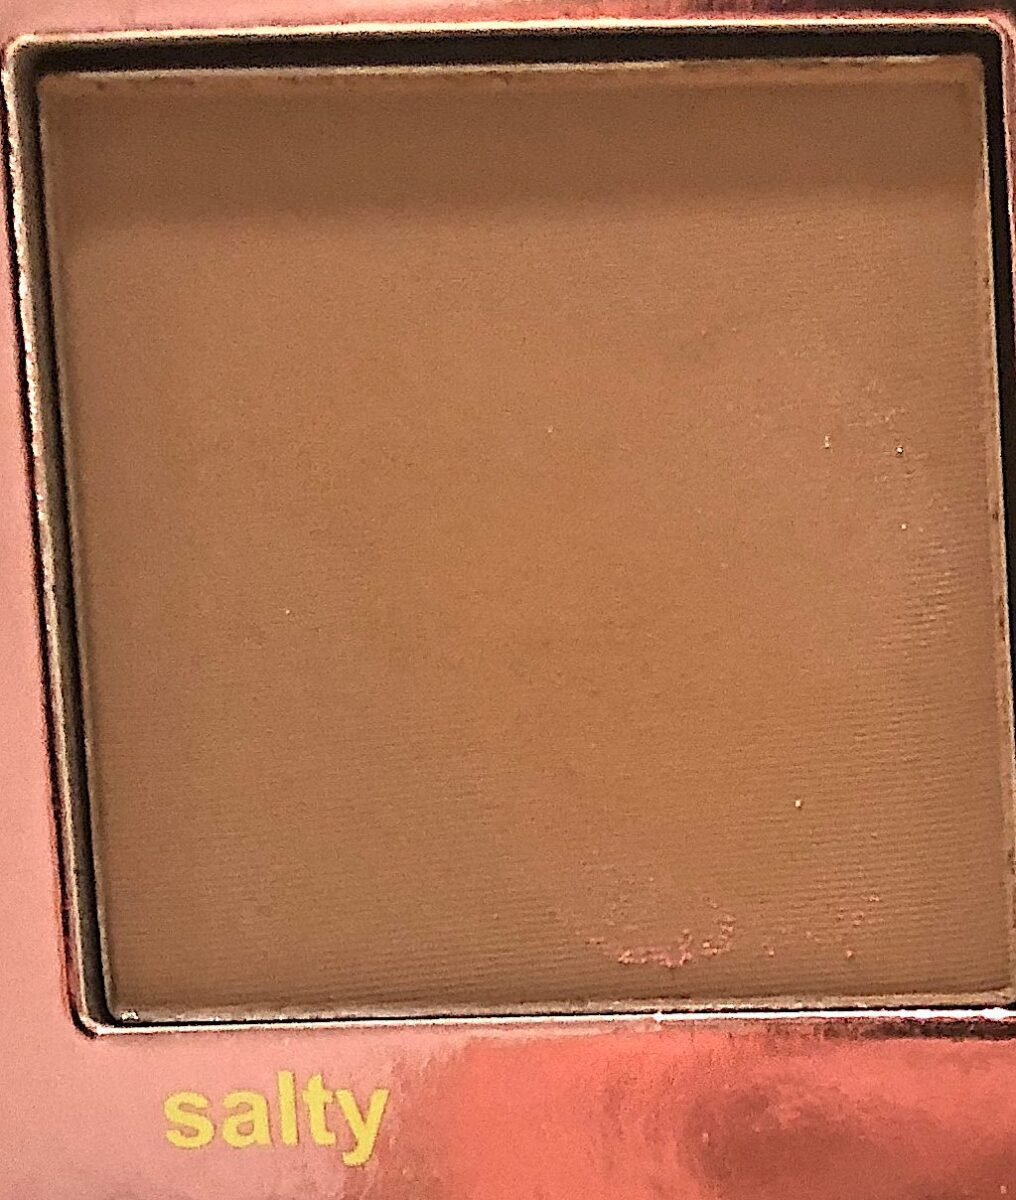 LIME CRIME SUNKISSED FACE PALETTE SHADE SALTY